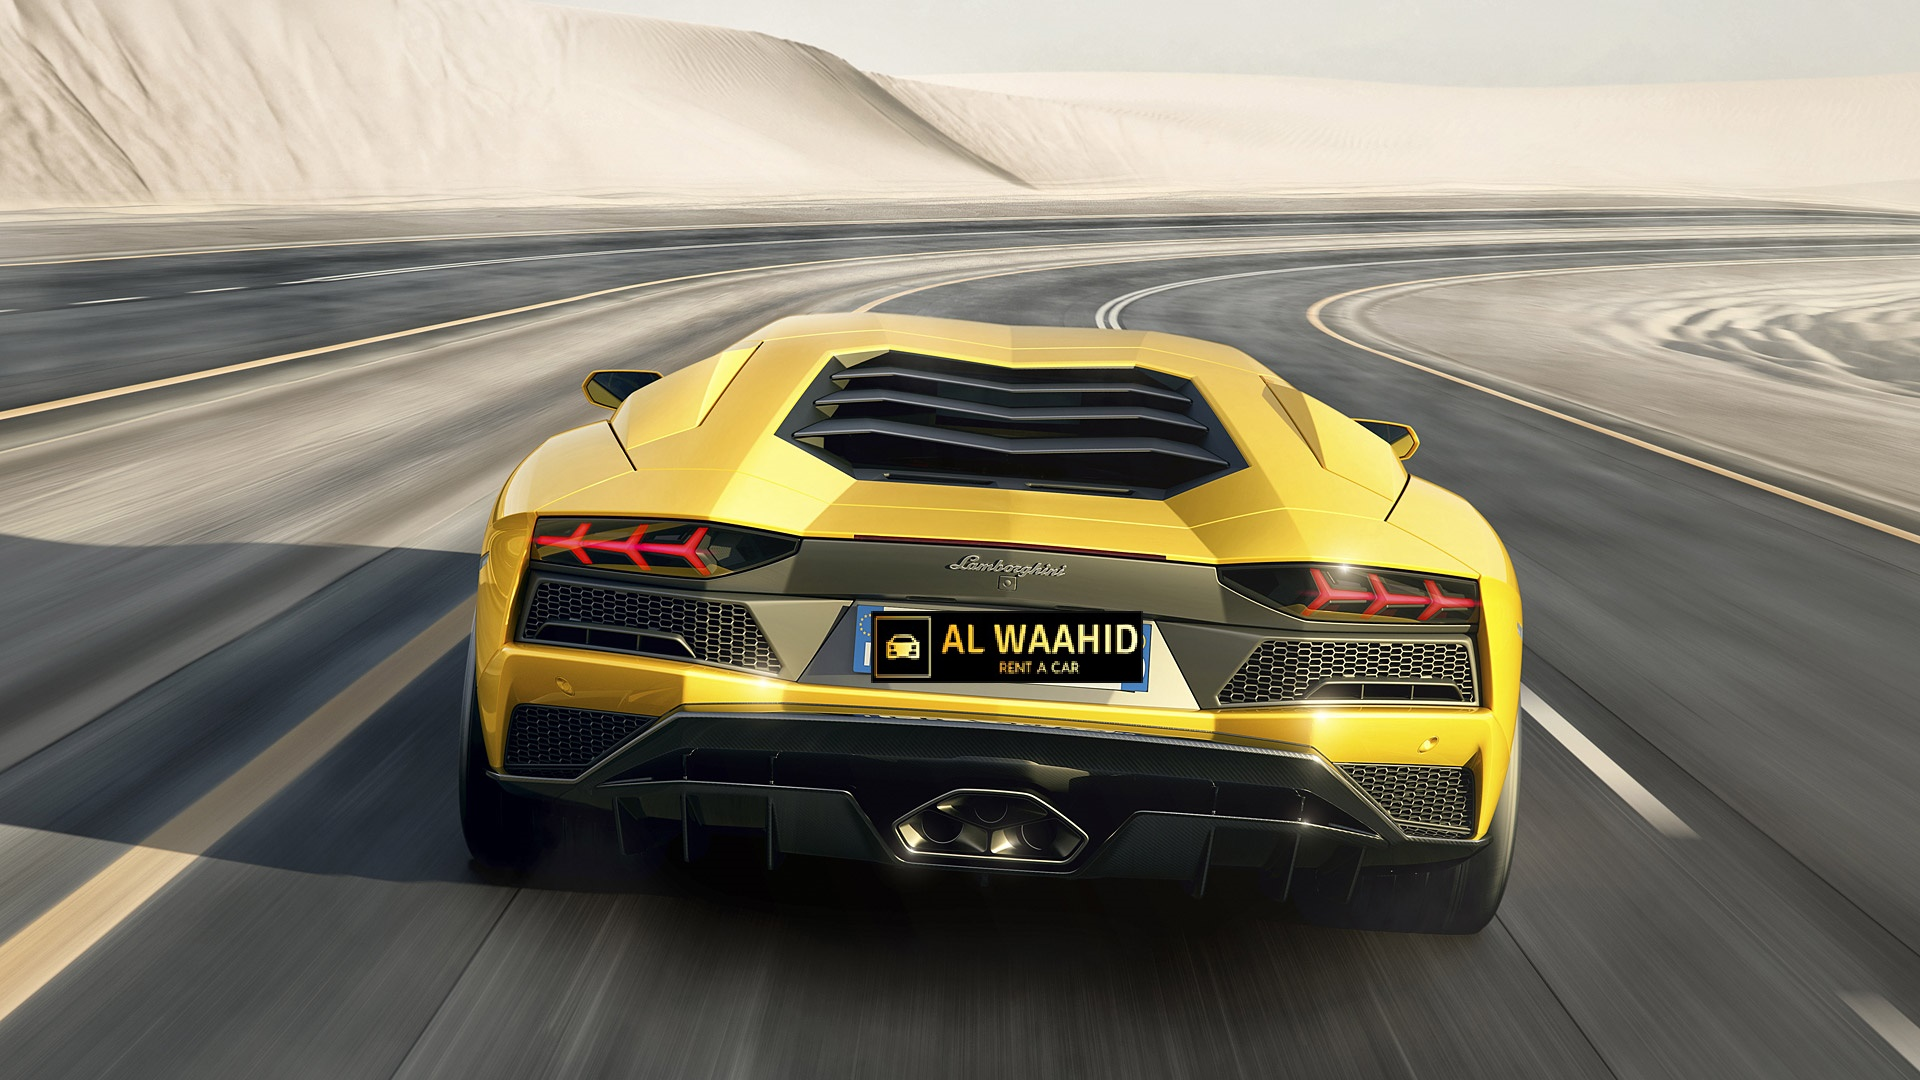 LAMBORGHINI AVENTADOR S luxury car rental dubai